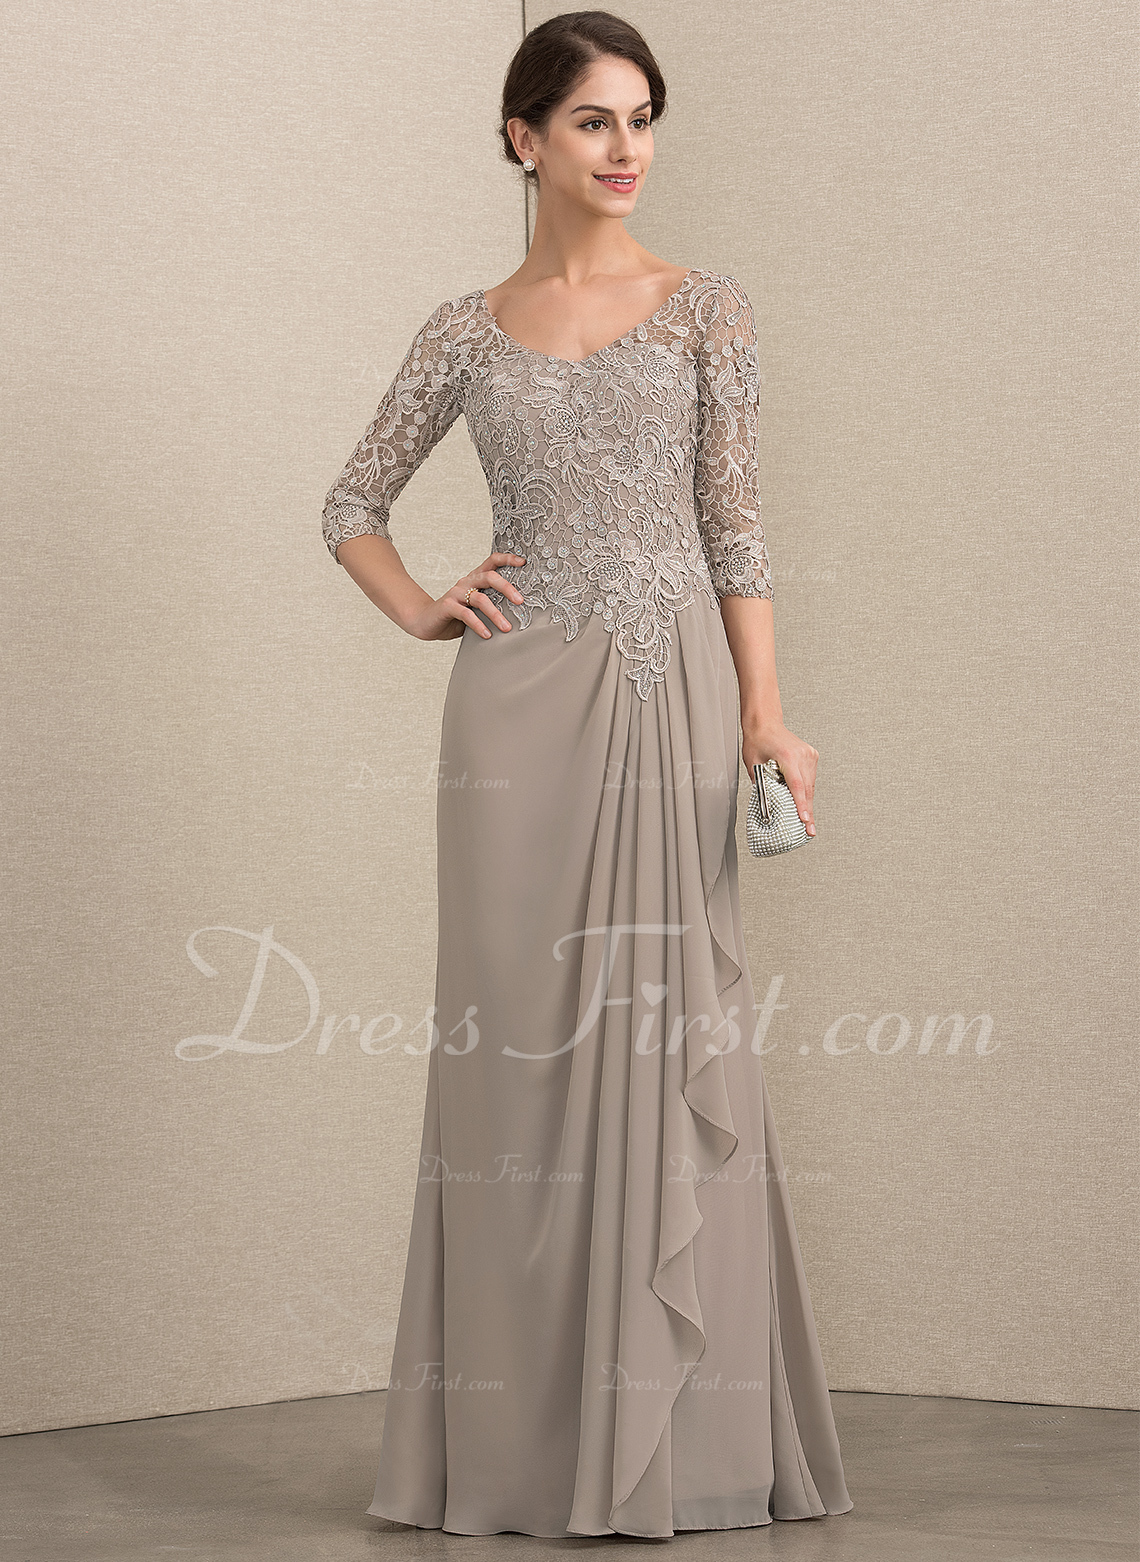 1052ad7f597 A-Line V-neck Floor-Length Chiffon Lace Mother of the Bride Dress With  Beading  164097